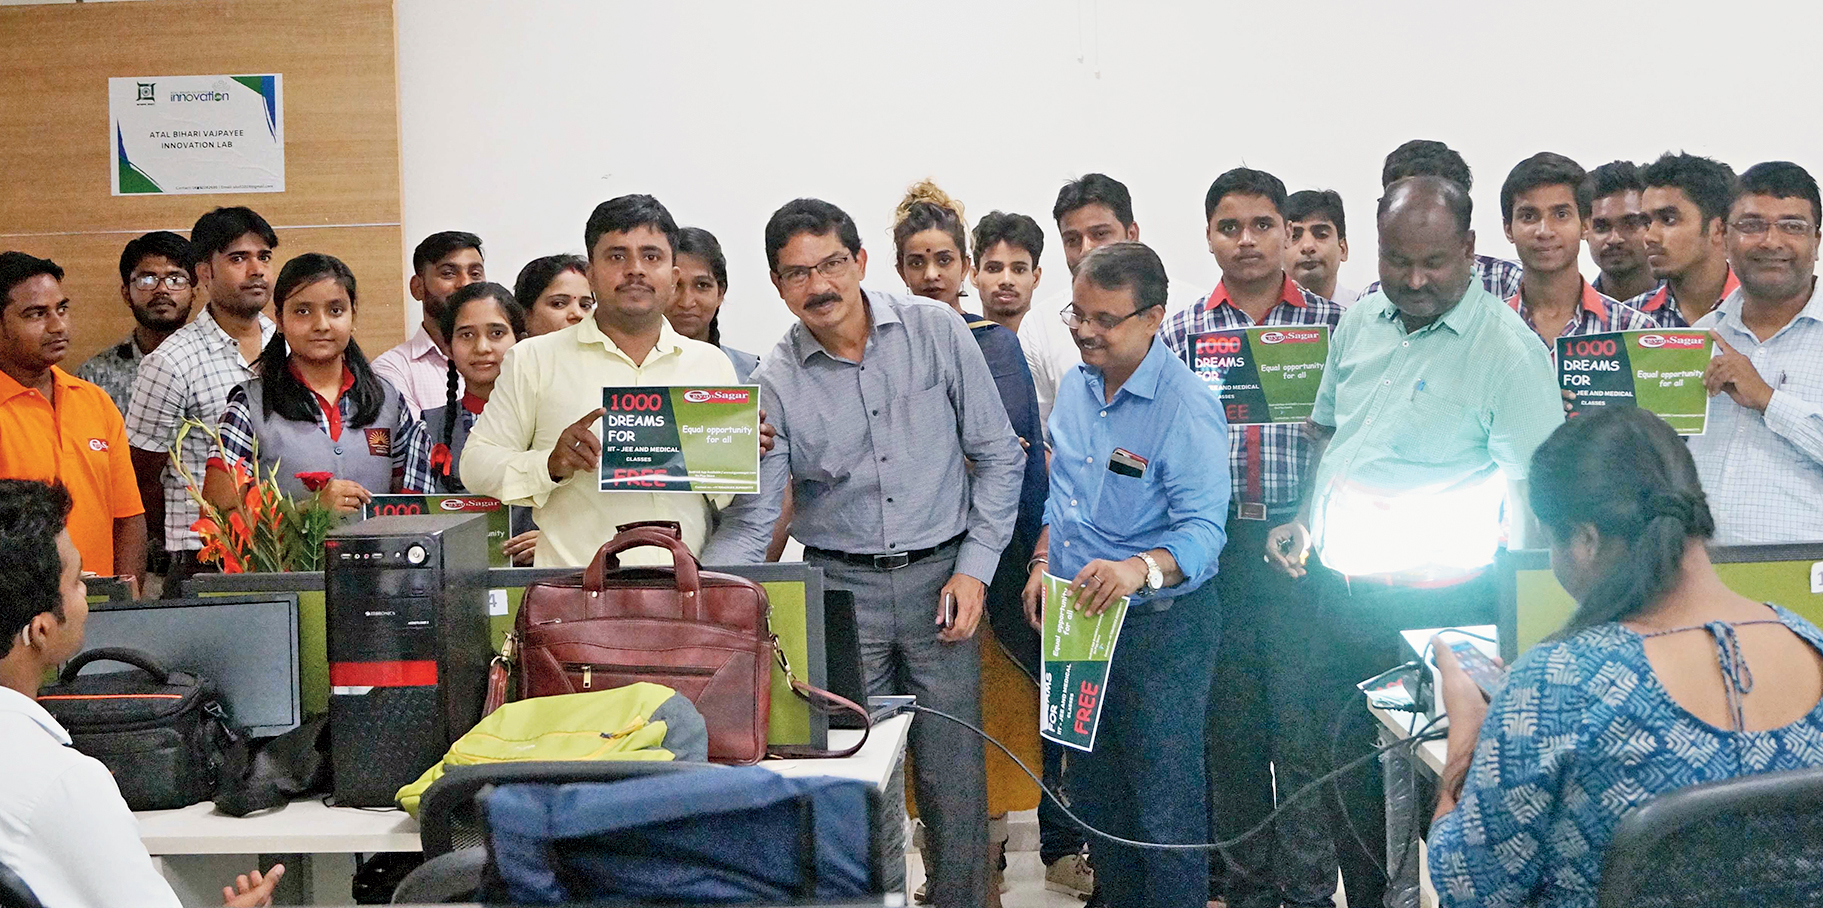 Principal secretary Rajeev Arun Ekka (centre) during the inauguration of the online IIT-JEE and medical classes at the Atal Behari Vajpayee Innovation Lab in Ranchi on Monday.